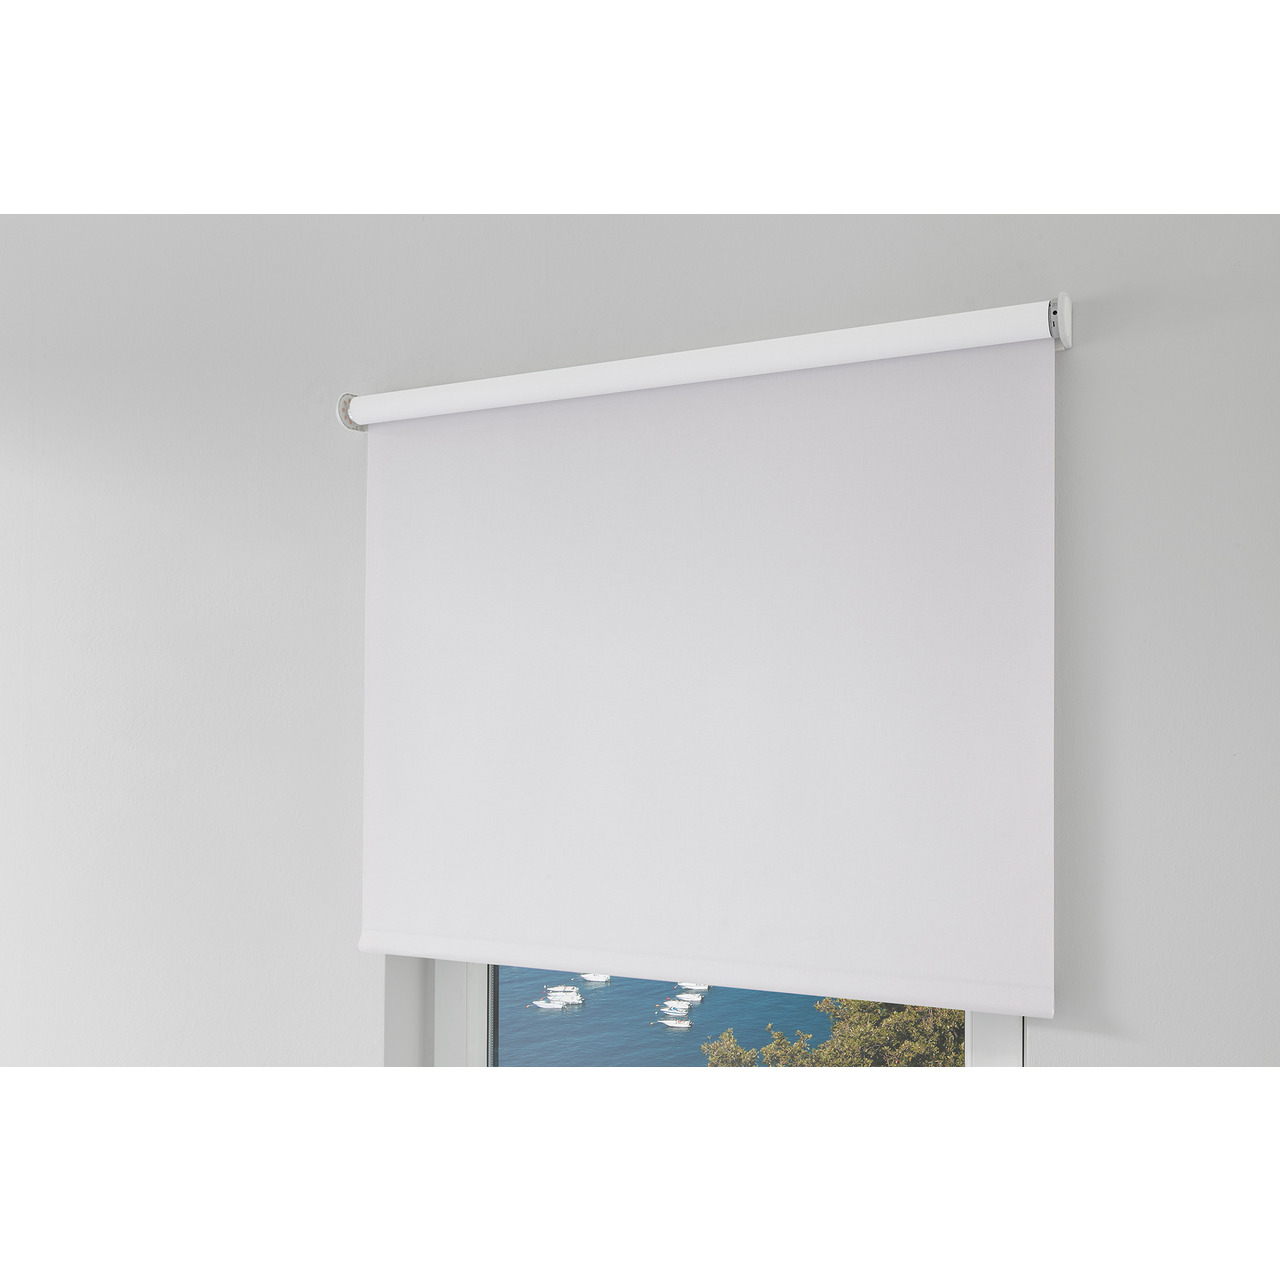 Erfal Smartcontrol Rollo by Homematic IP- 90 x 160 cm (B x H)- blickdicht abdunkelnd weiss